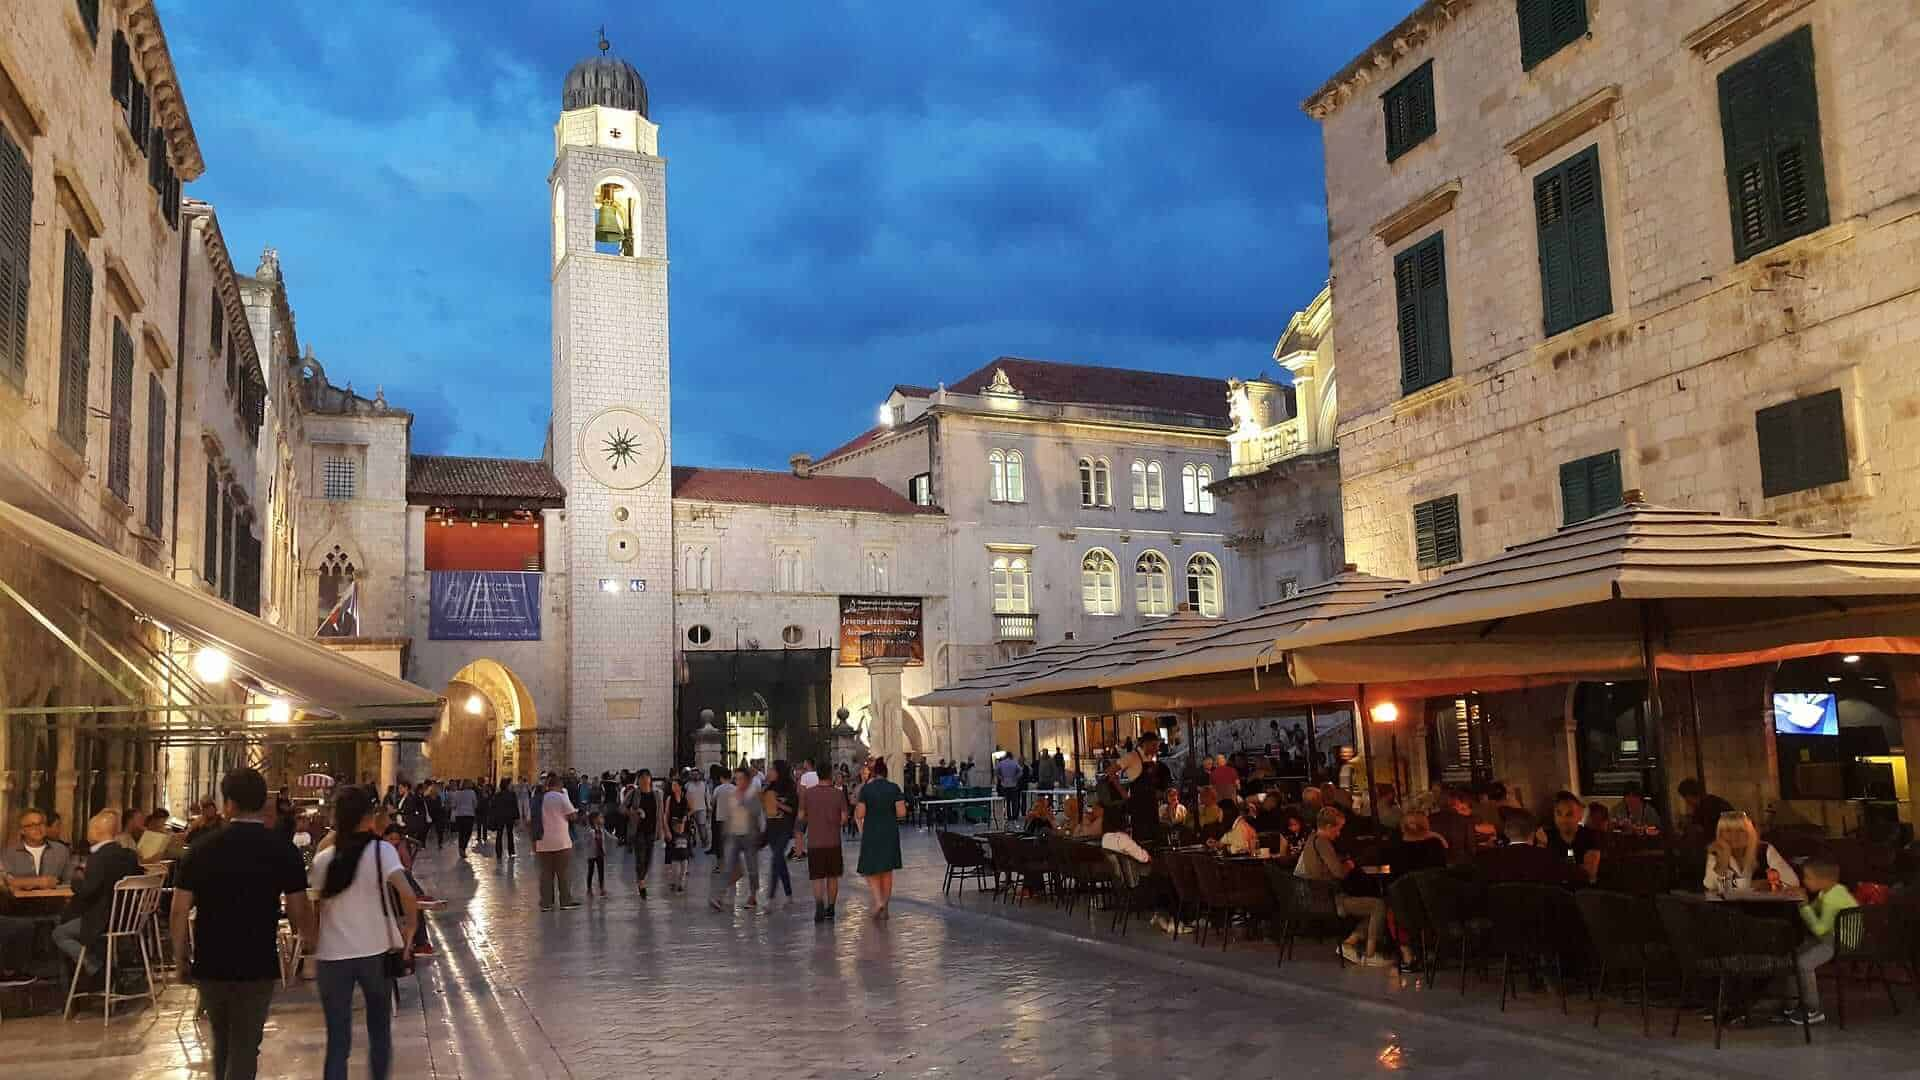 Game of Thrones Locations - Old Square, Dubrovnik